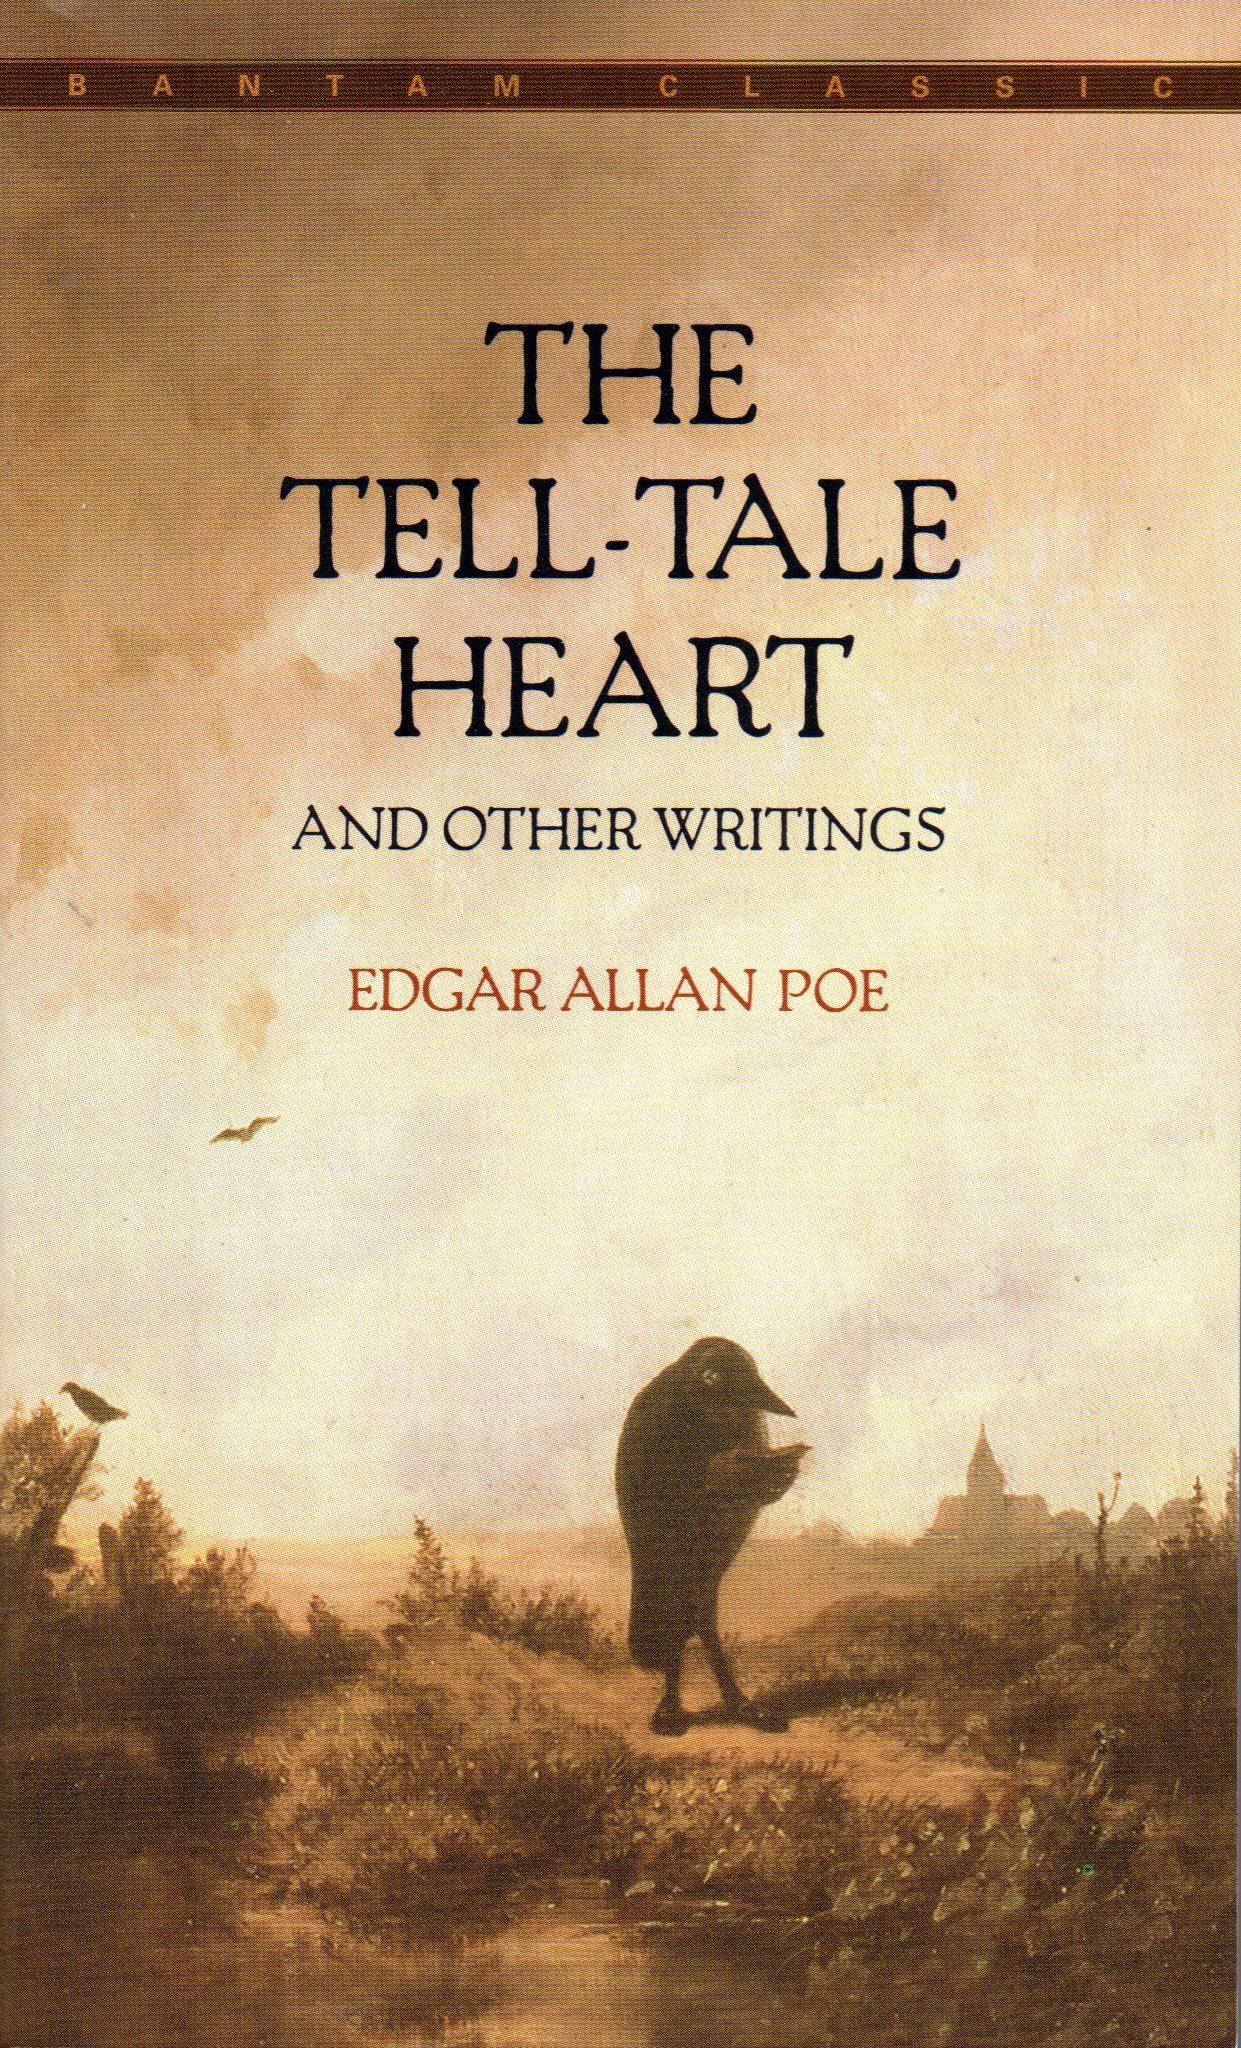 the tell-tale heart and other writings – the marble faun books & gifts